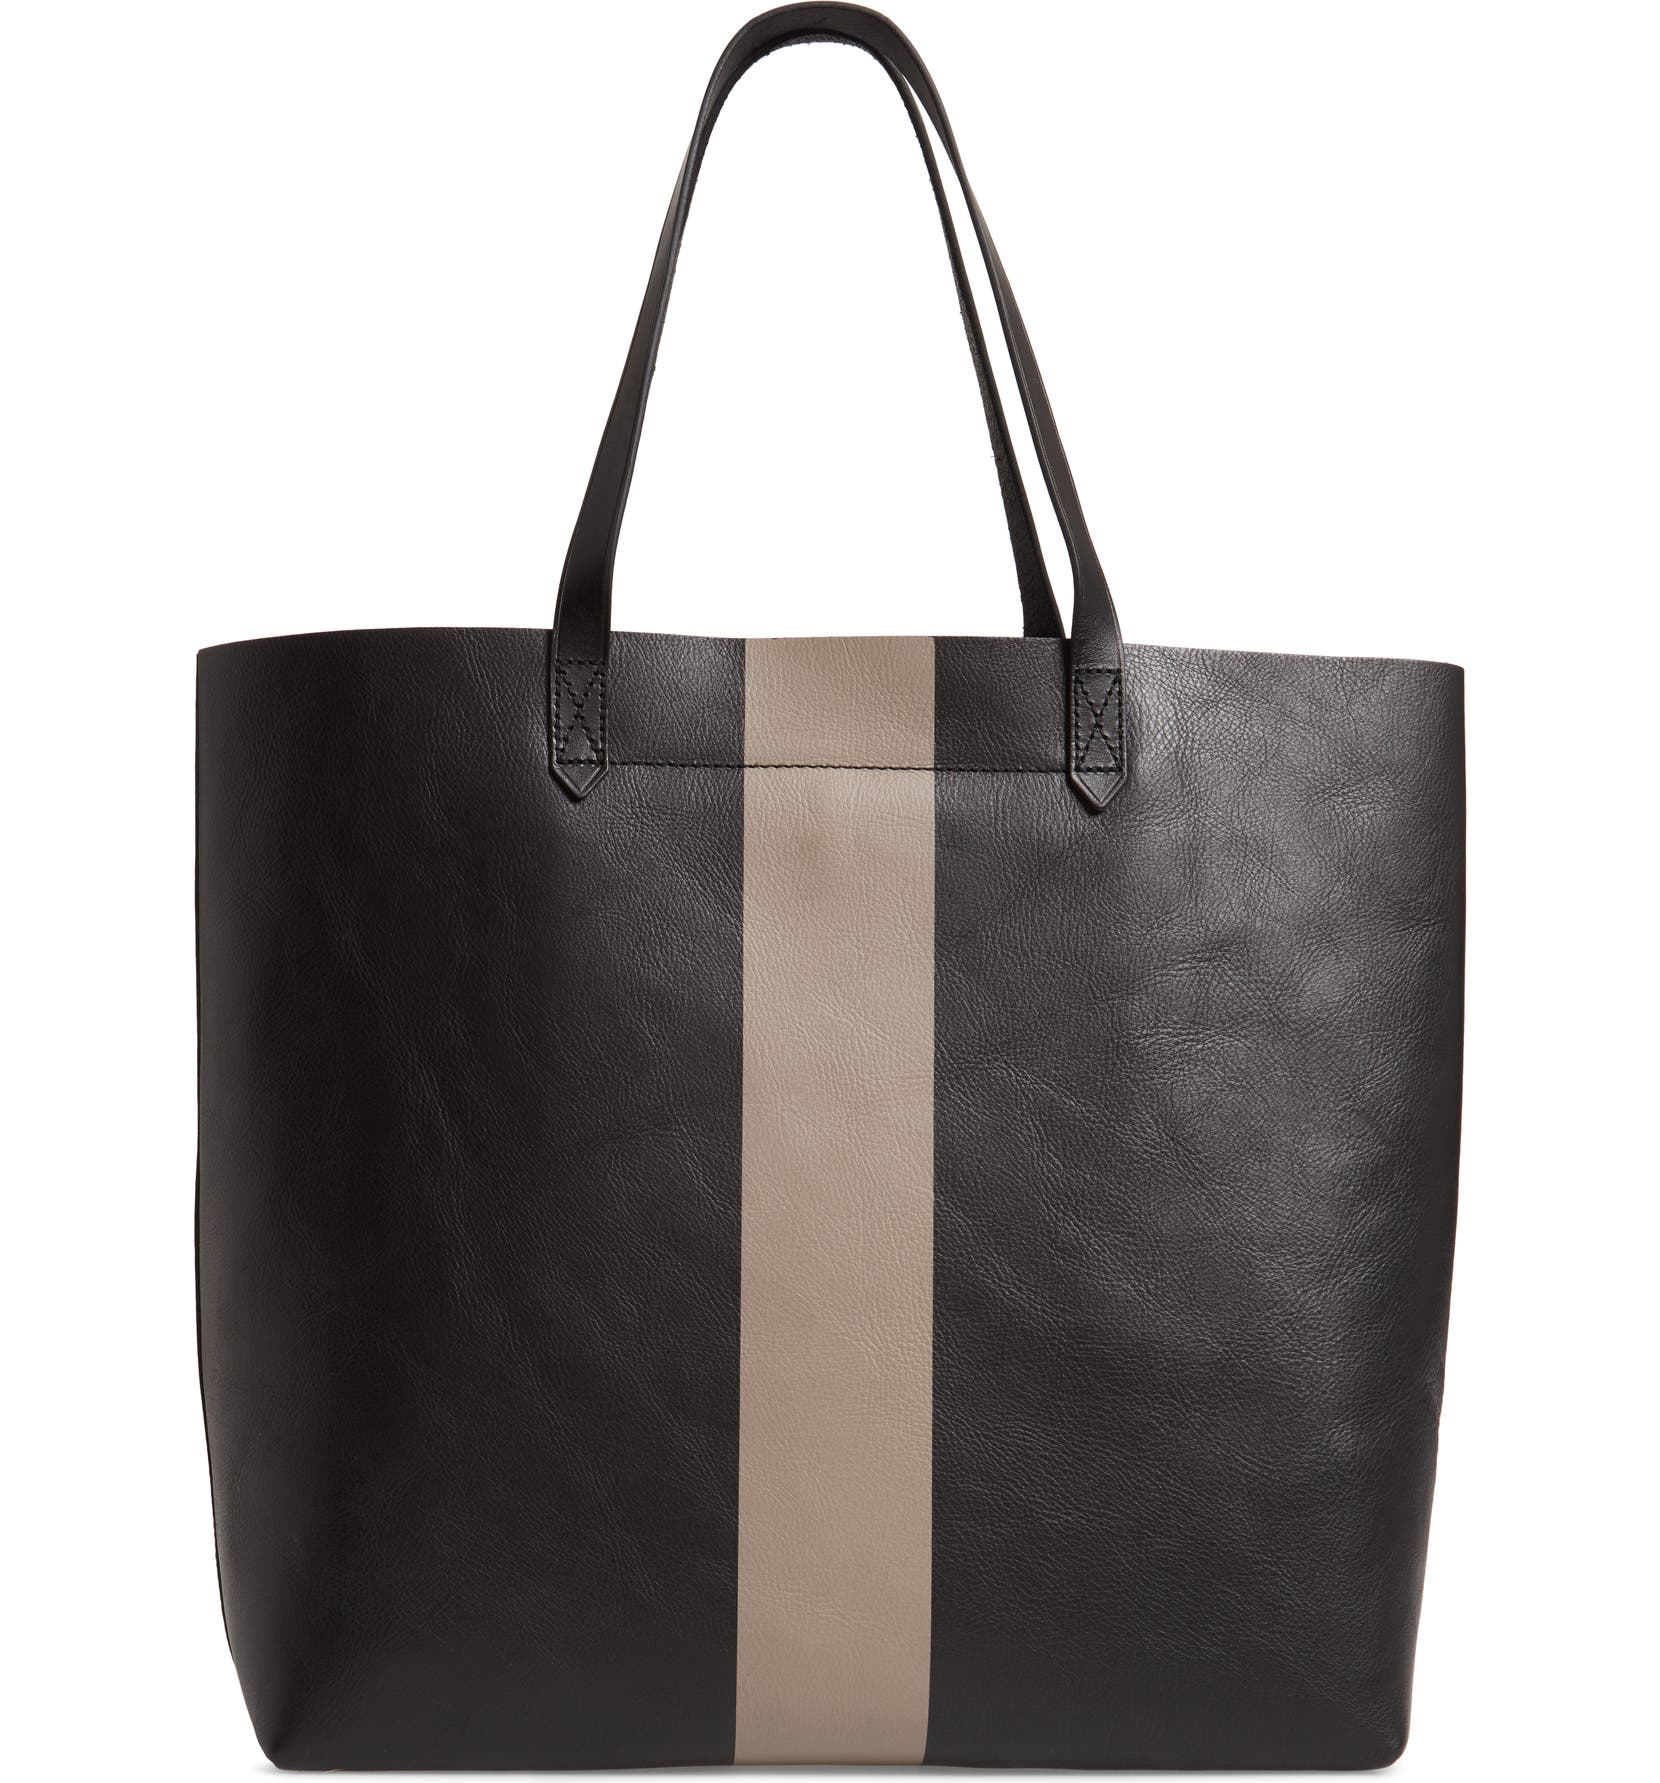 6b472f263de8 Madewell Paint Stripe Transport Leather Tote